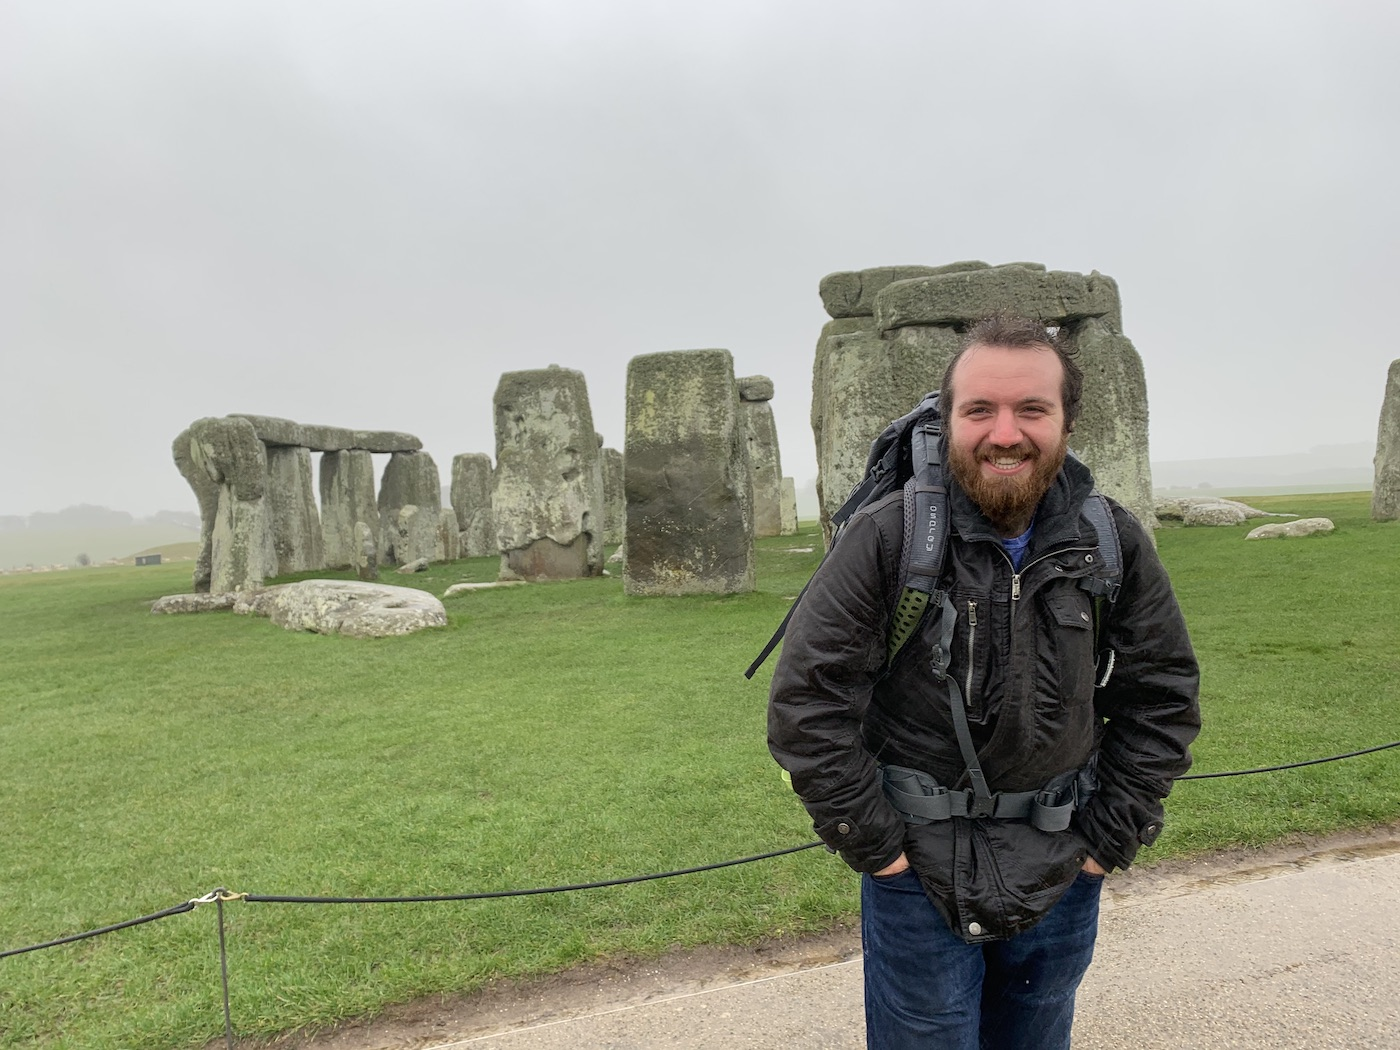 Me at Stonehenge in the rain